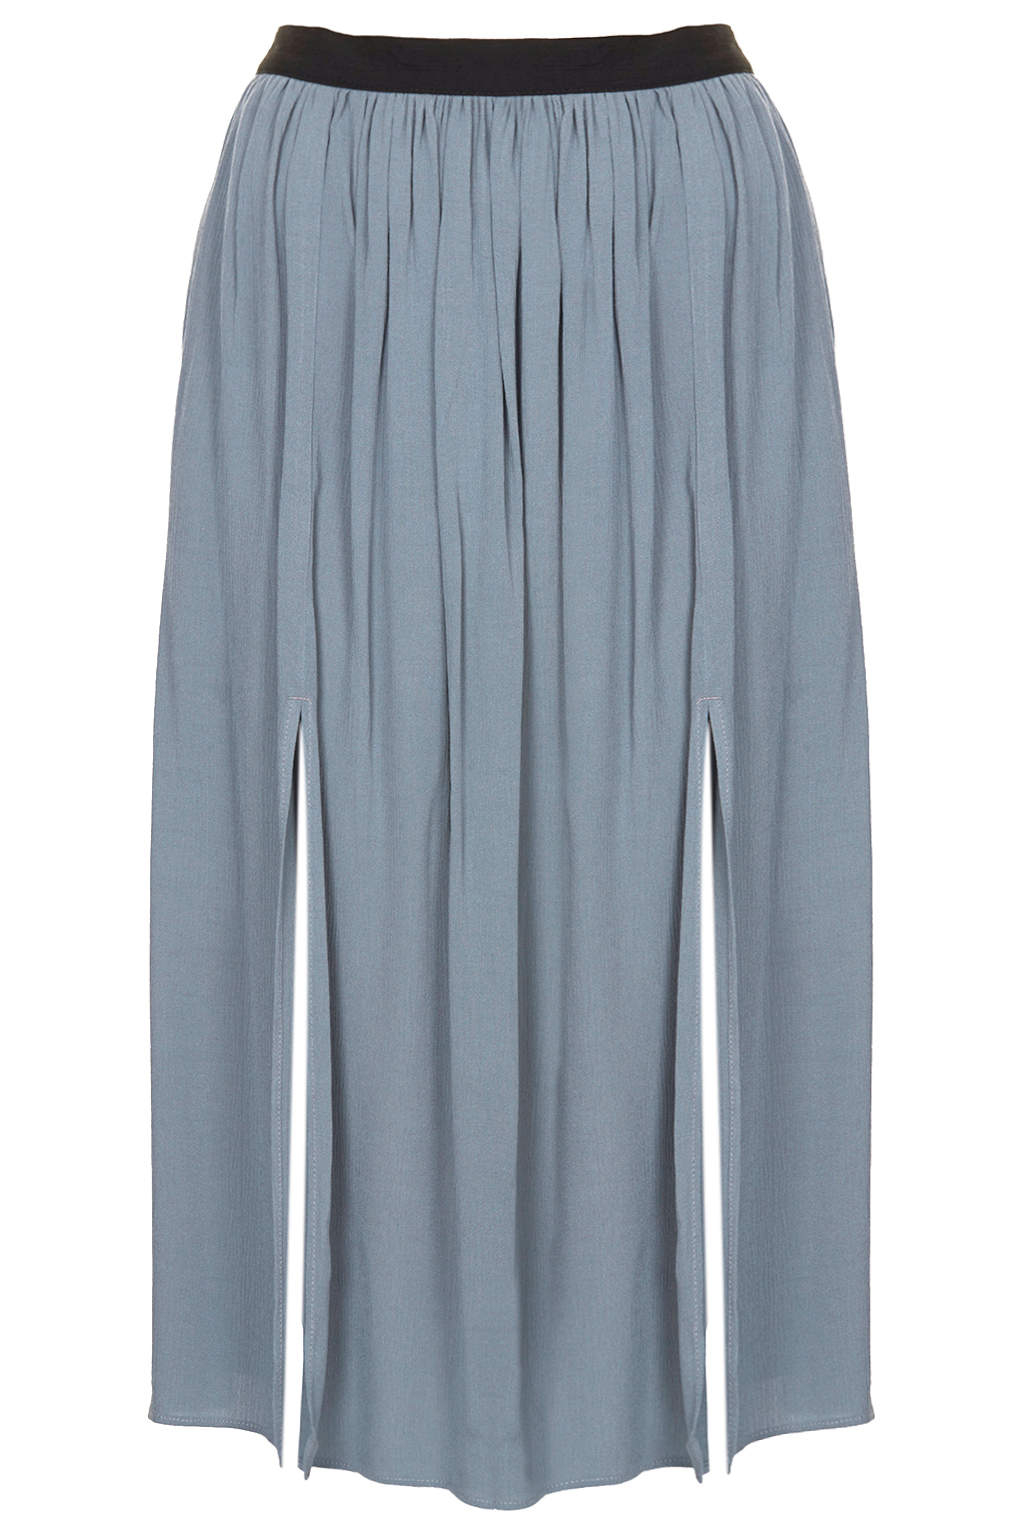 Topshop womens chambray spliced midi skirt chambray in for Womens denim shirts topshop